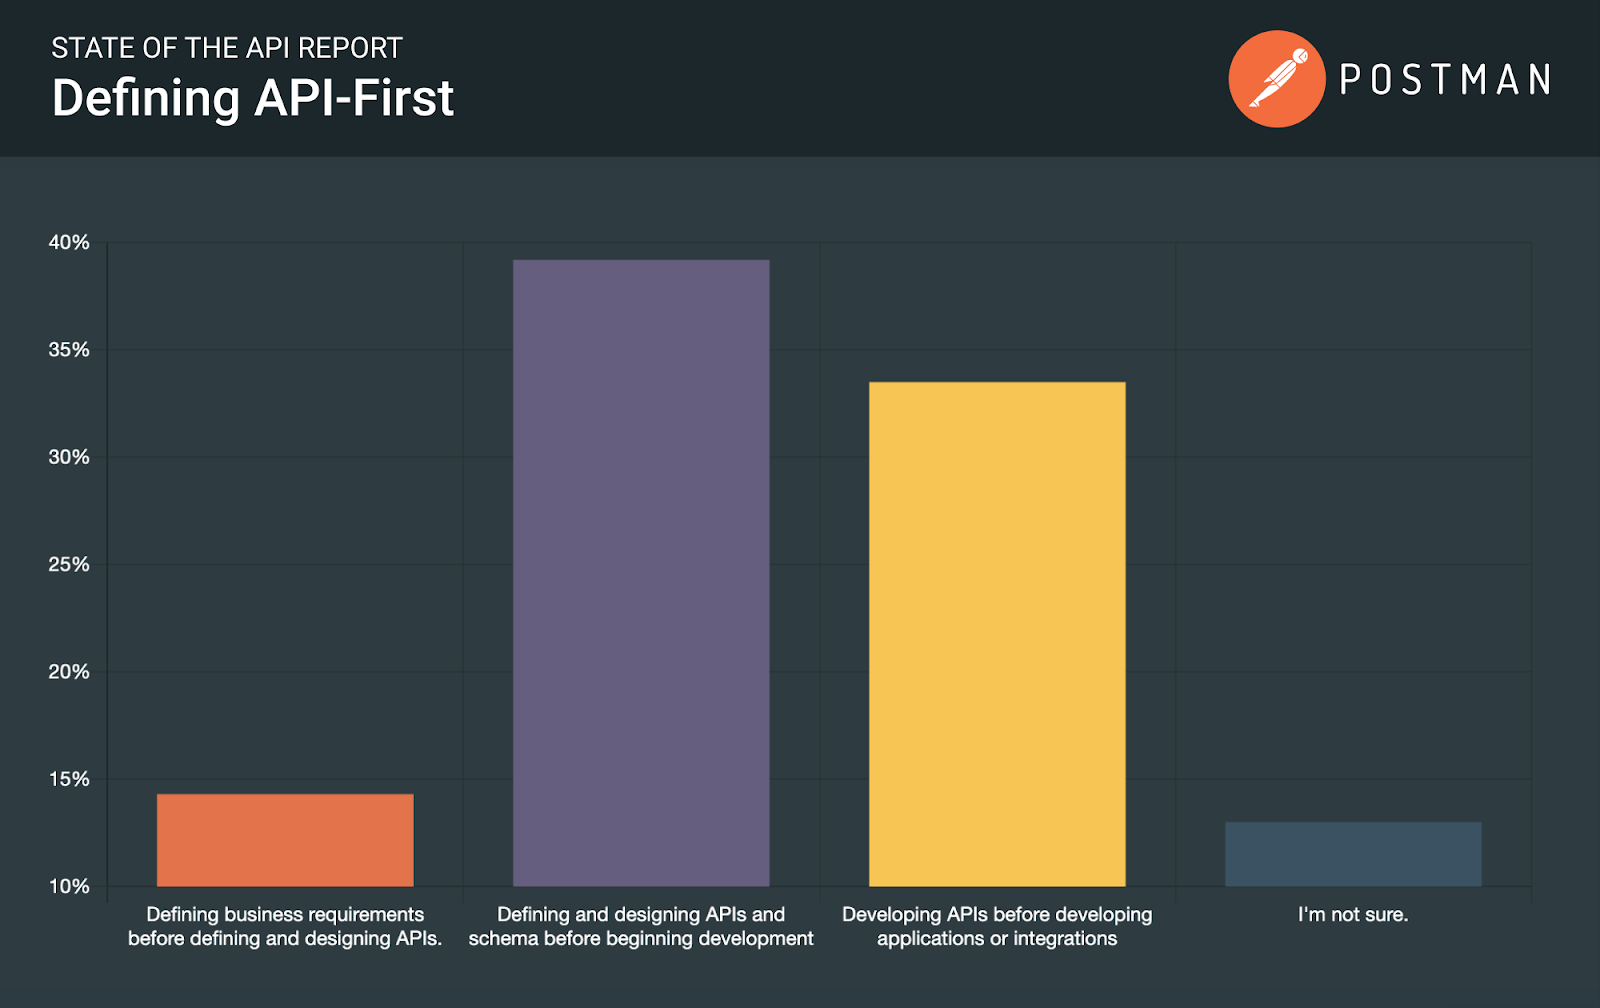 State of the art API report: defining API-first